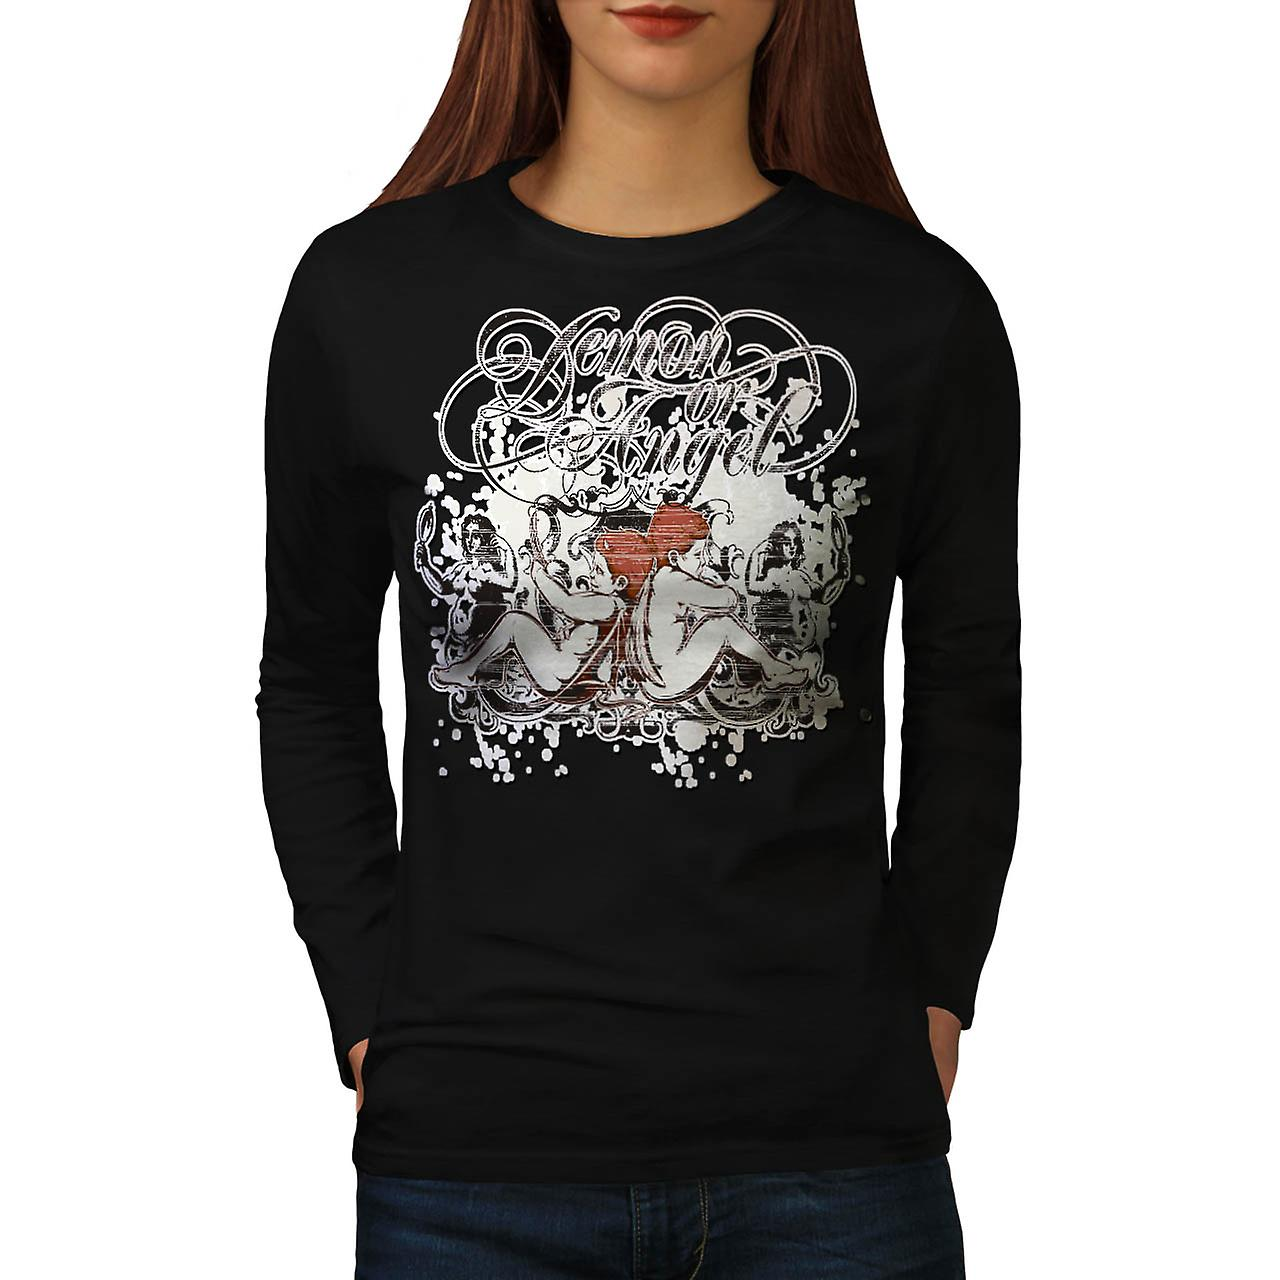 Demone o Angel Wing Heaven Hell donna manica lunga t-shirt nera | Wellcoda